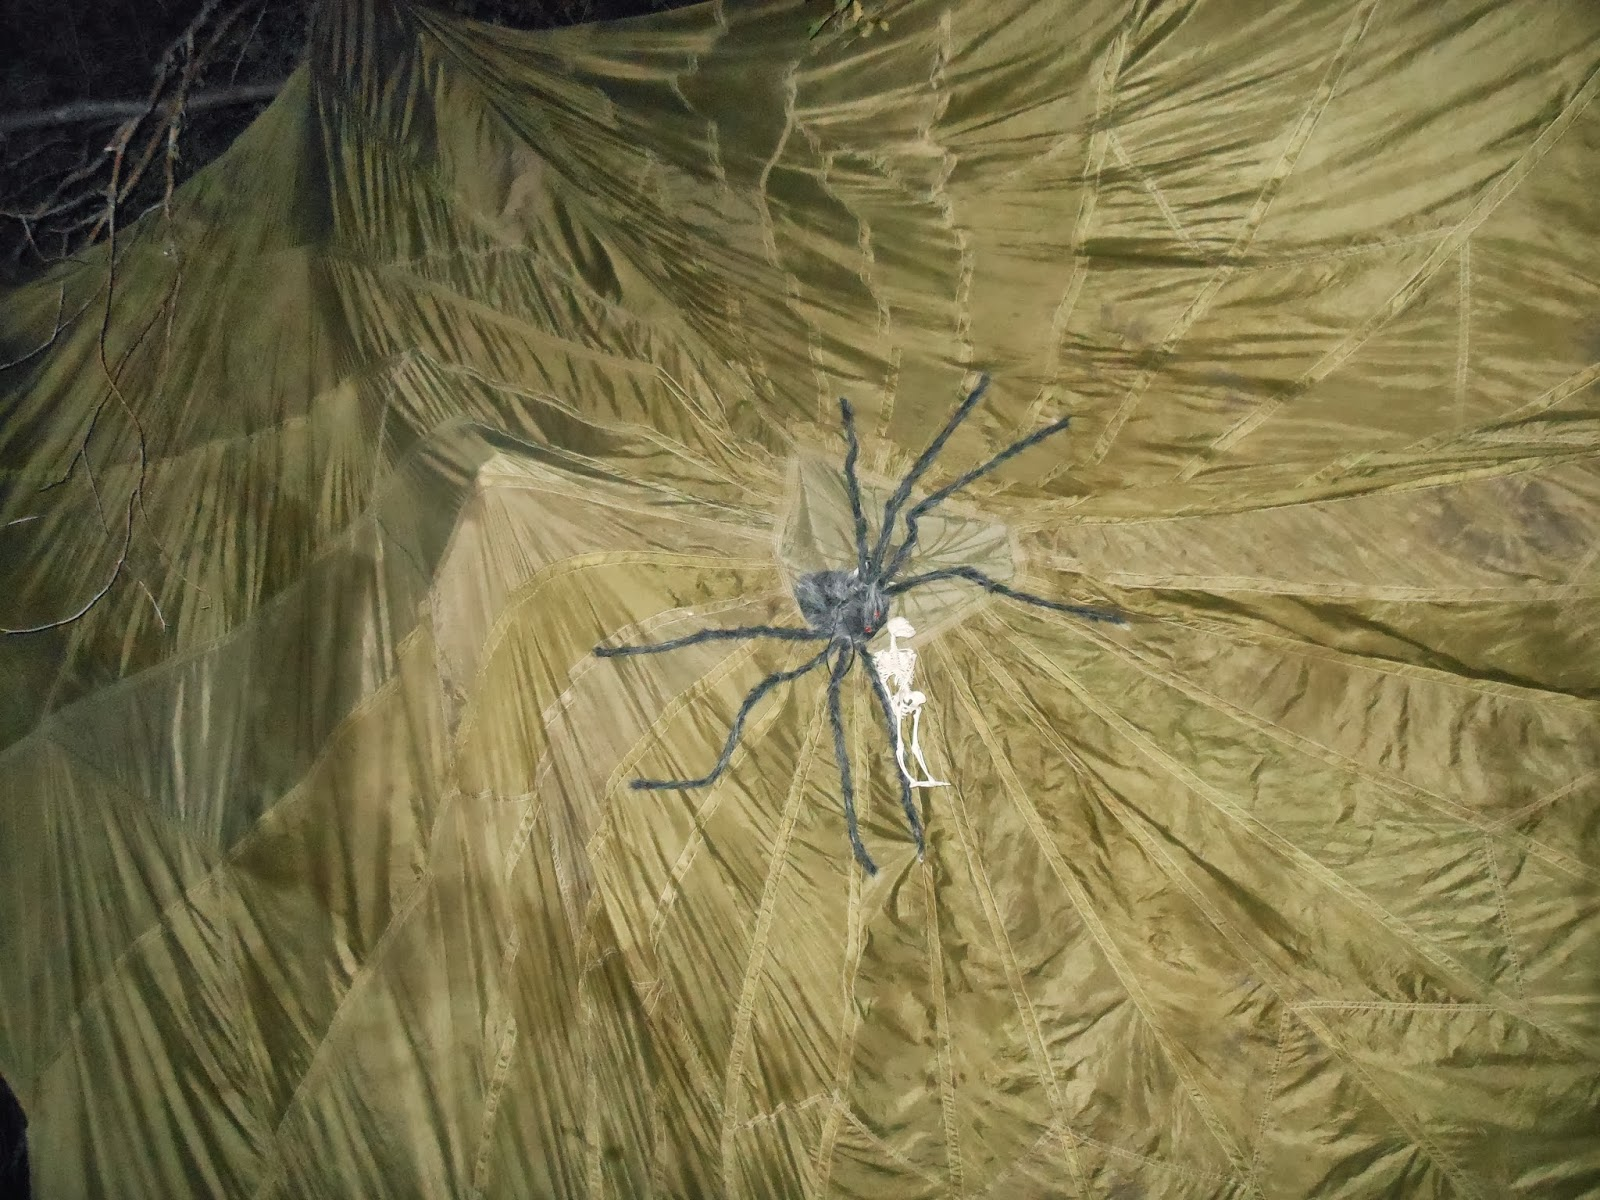 Real life giants spider - photo#19